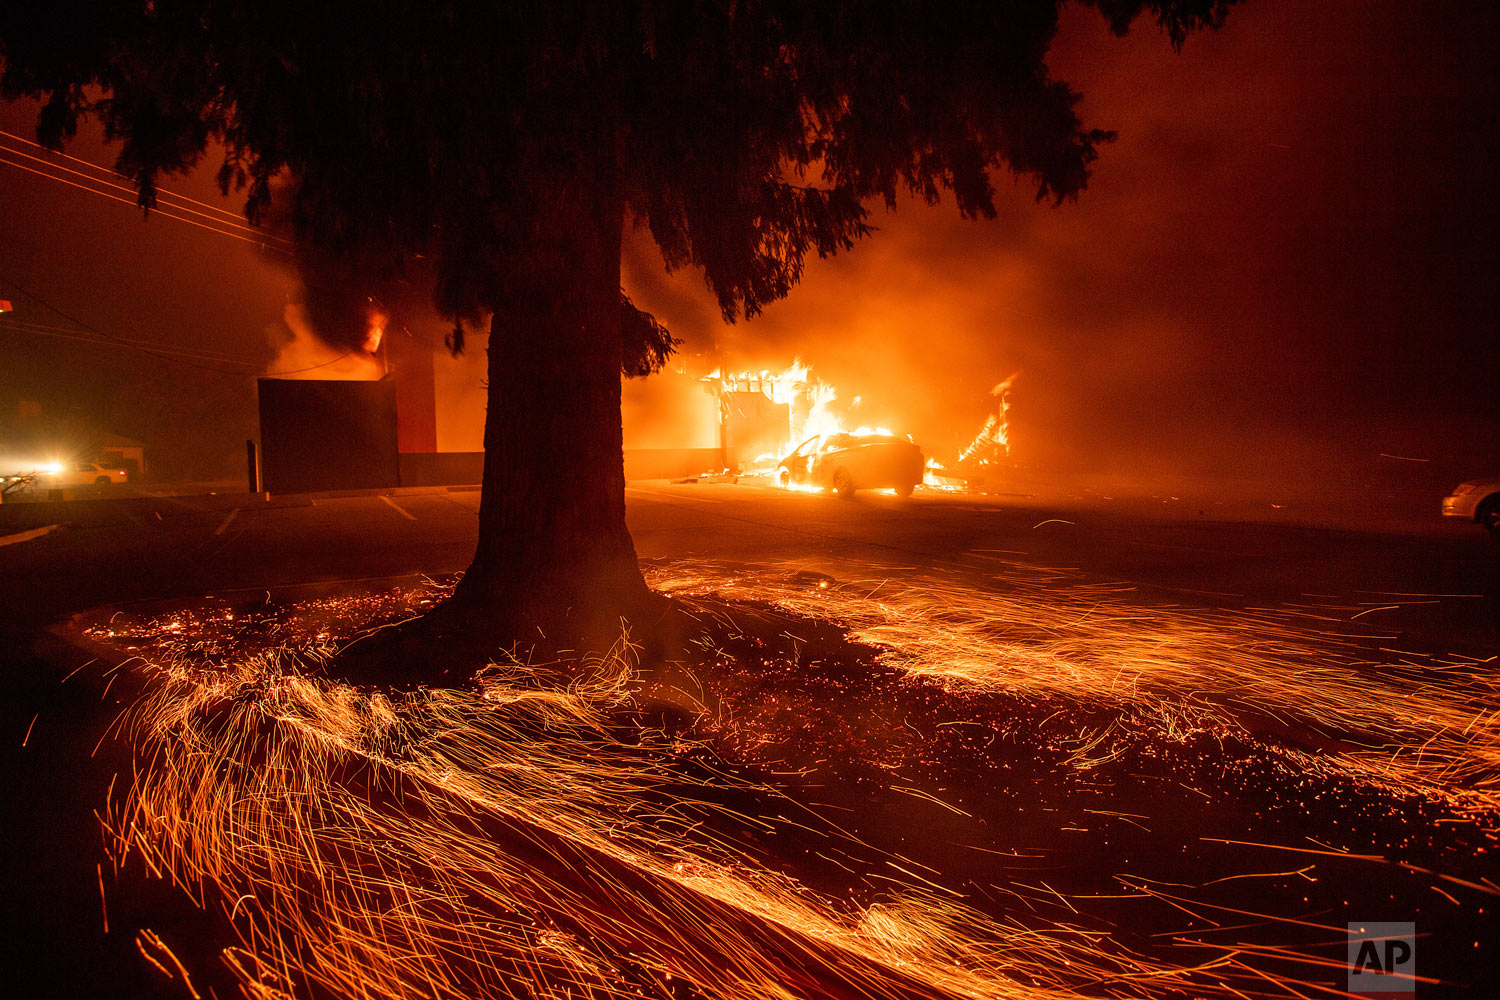 Flames consume a fast food restaurant as the Camp Fire tears through Paradise, Calif., on Thursday, Nov. 8, 2018. The fire incinerated most of a town of about 30,000 people with flames that moved so fast there was nothing firefighters could do, authorities said Friday, Nov. 9, 2018. (AP Photo/Noah Berger)